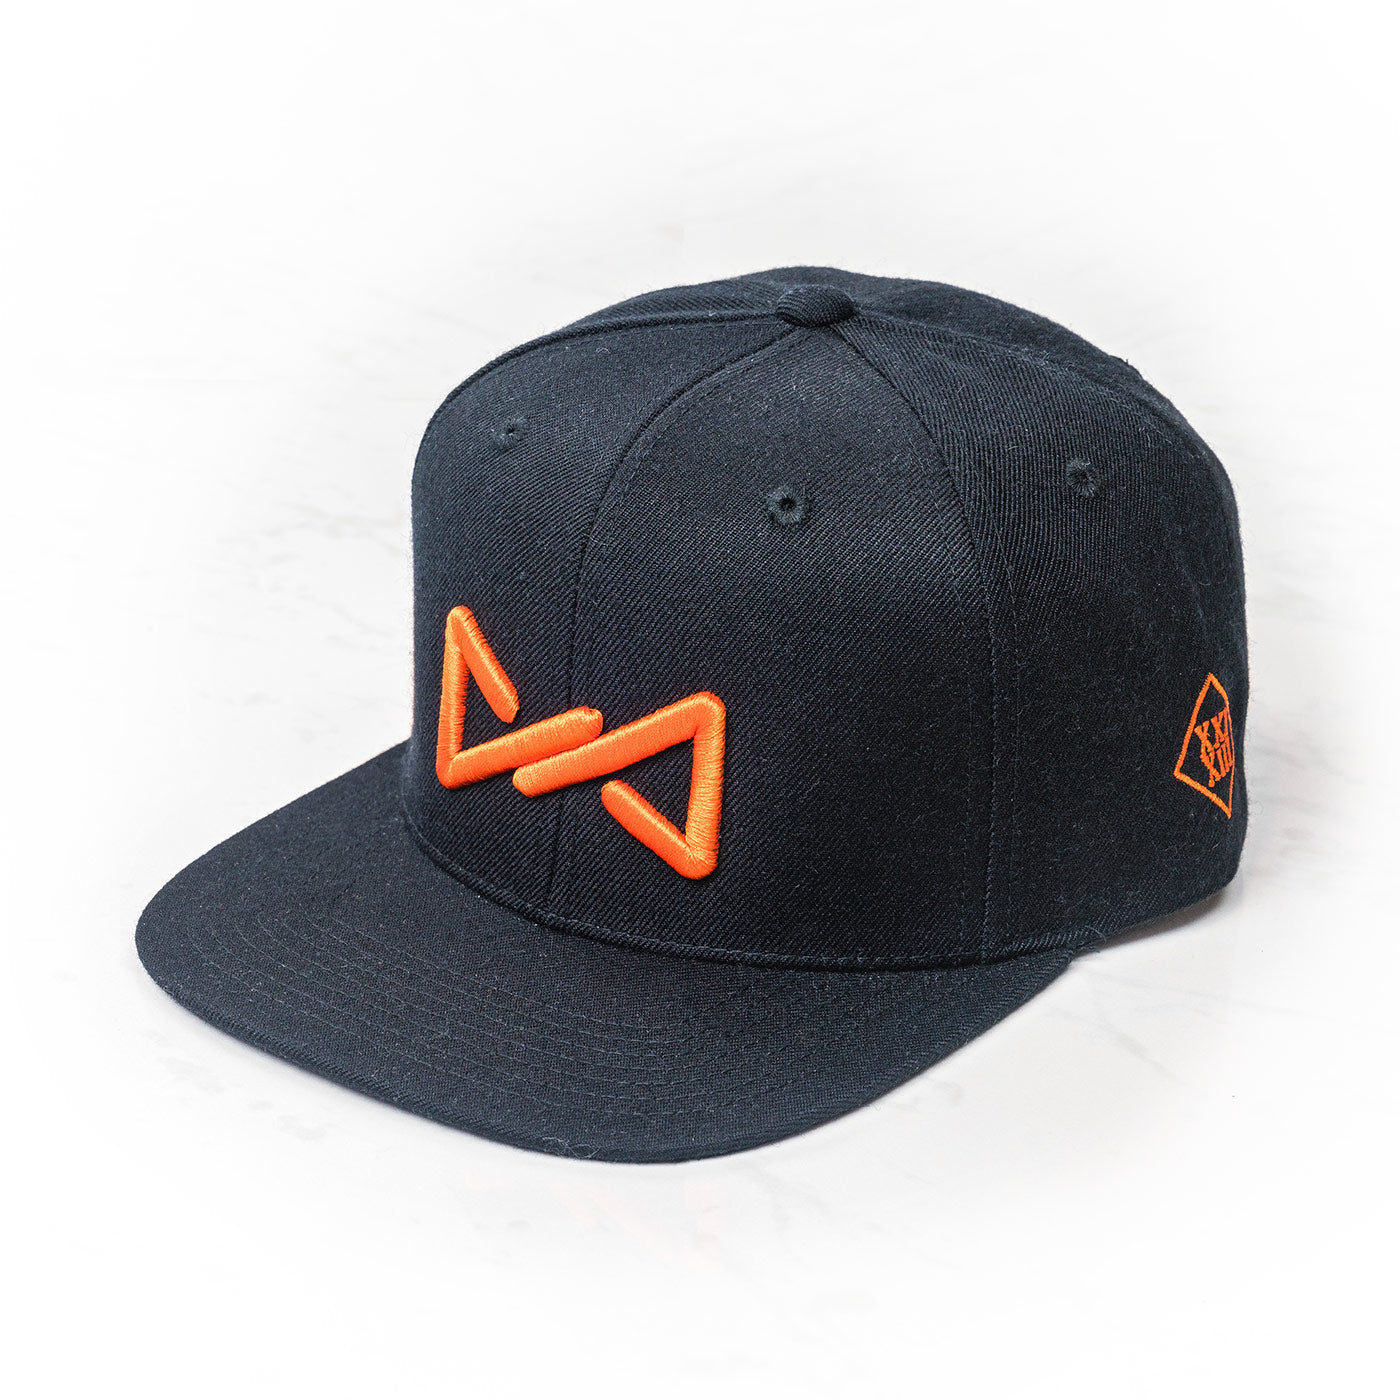 Classic snapback orange on black